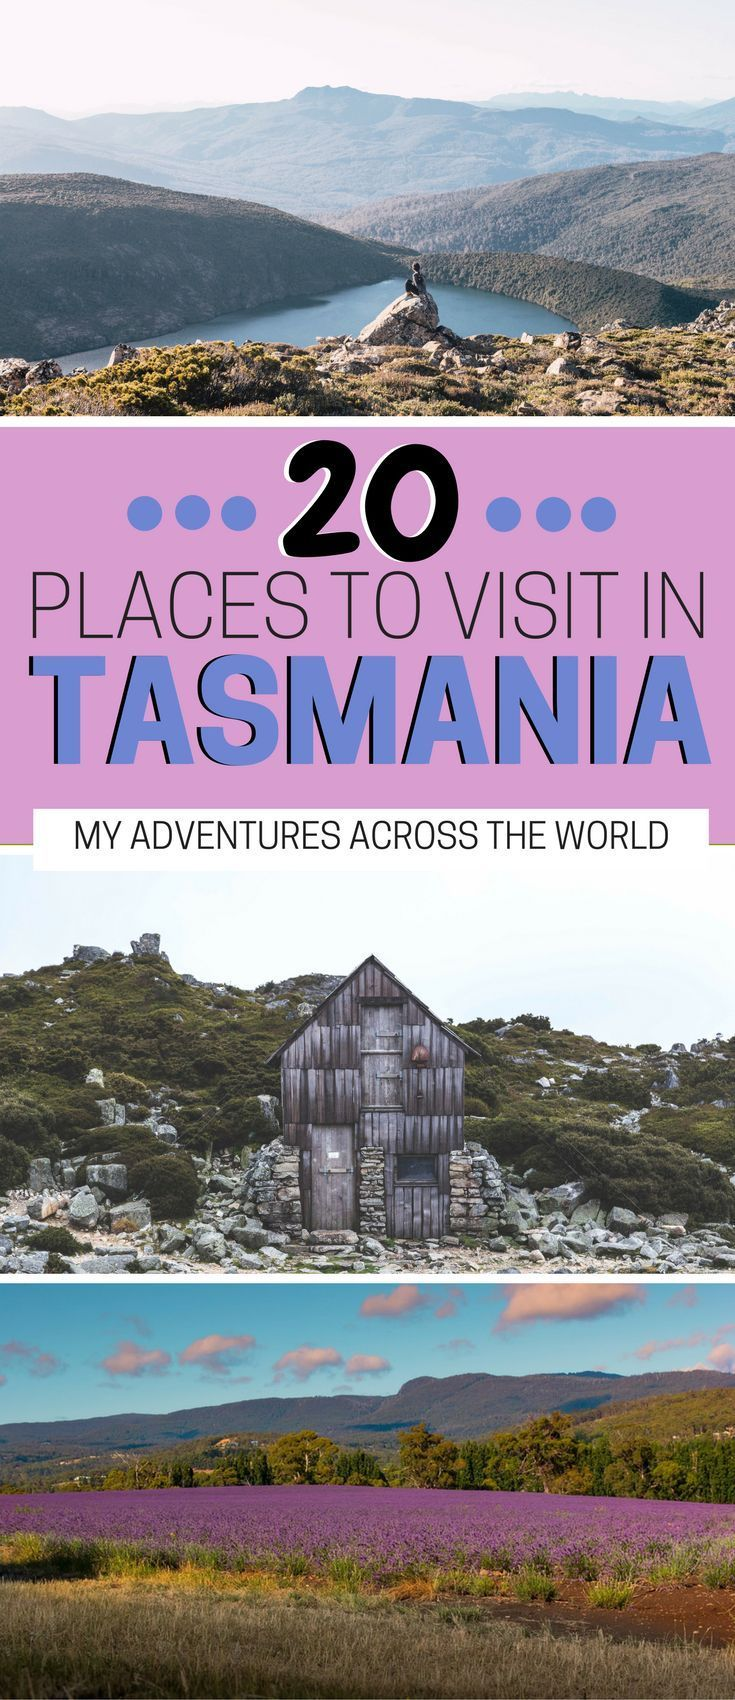 Tasmania is probably the most underrated destination in Australia! With stunning landscapes, breathtaking beaches, lavender fields and more, a Tasmania road trip will leave you speechless. Check out this ost for the 20 best things to do in Tasmania! | Tasmania Australia | Tasmania travel tips | Tasmania bucket list #tasmania #tasmaniagram #australiatravel - via @clautavani